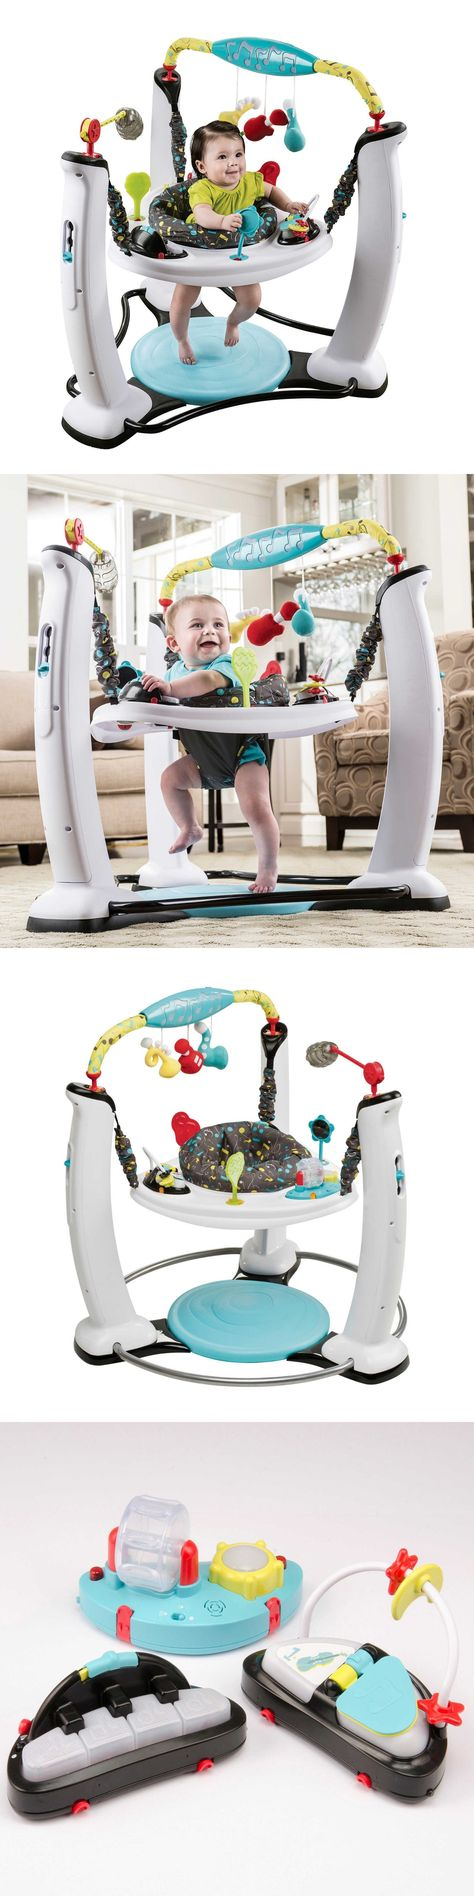 Evenflo ExerSaucer Jump and Learn Jumper Jam Session